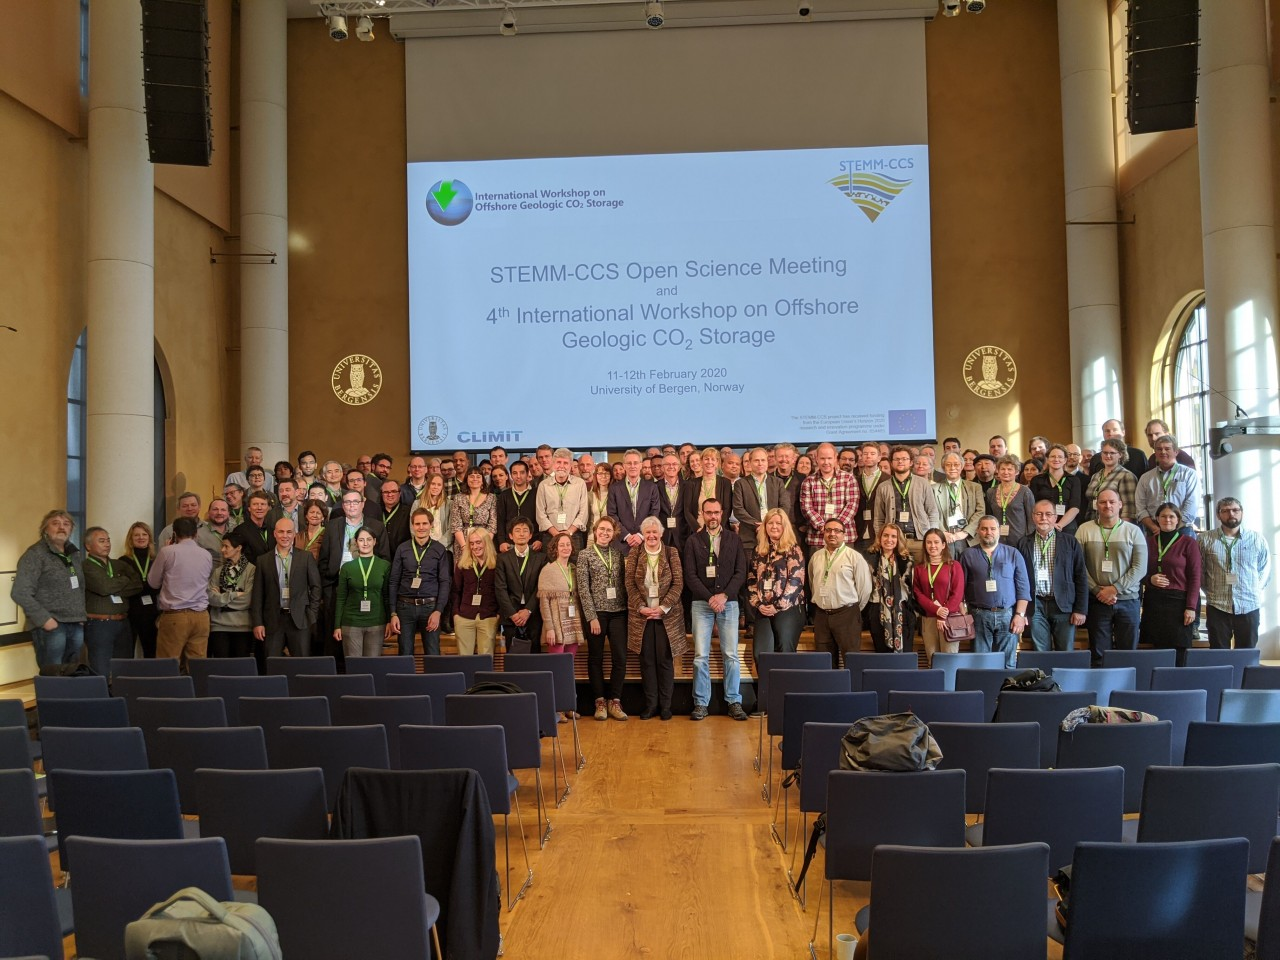 Group photo of the Offshore CCS Workshop and STEMM-CCS Open Science attendees